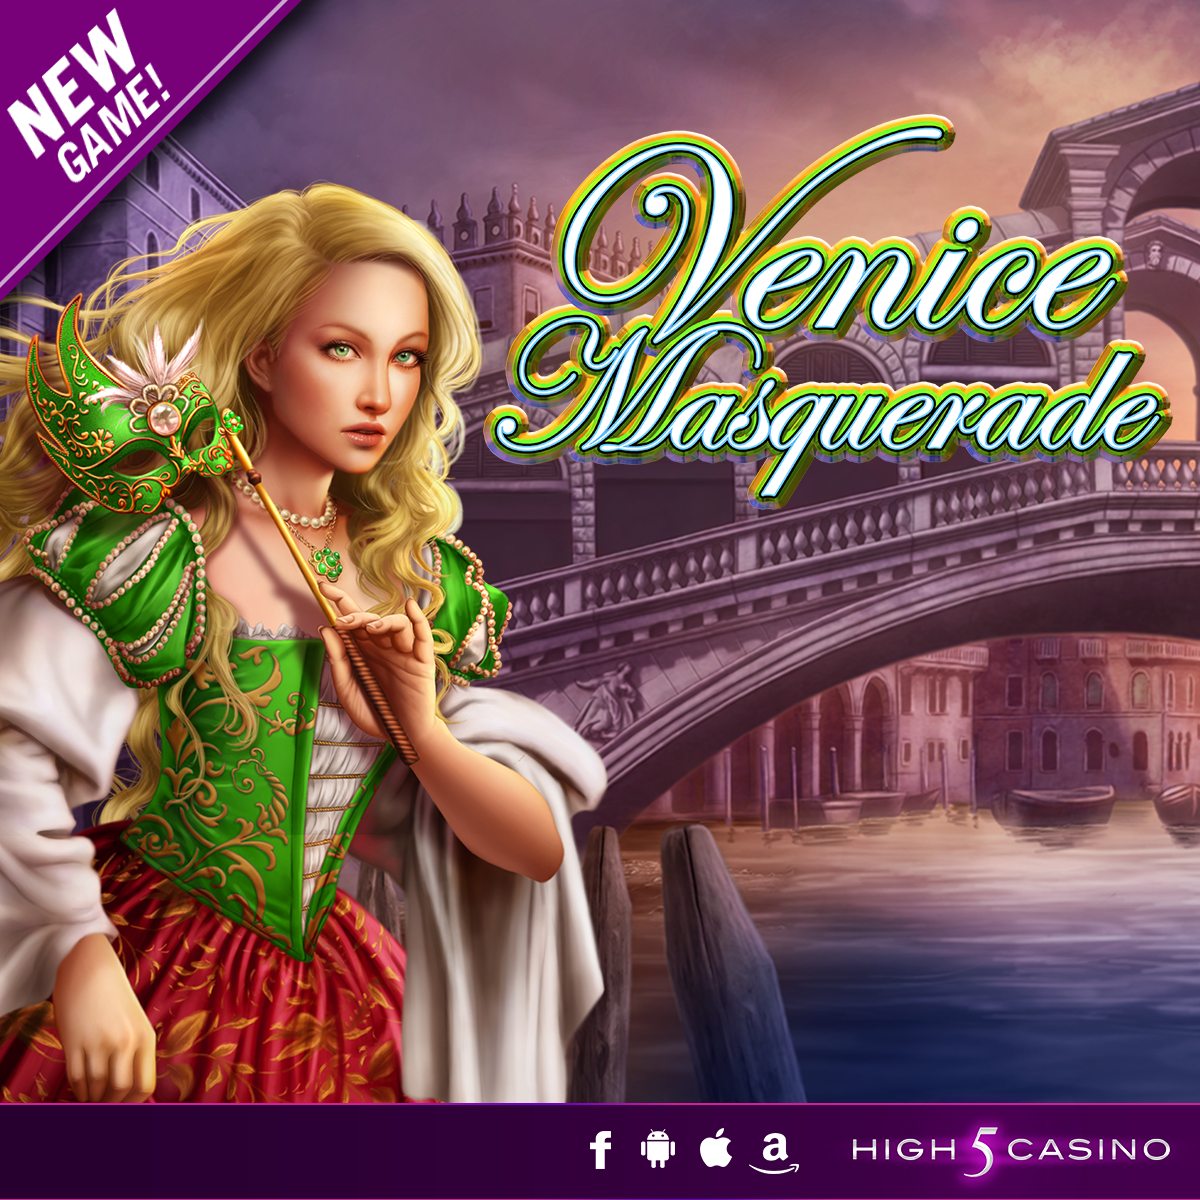 Masquerade Slot - Play for Free Online with No Downloads